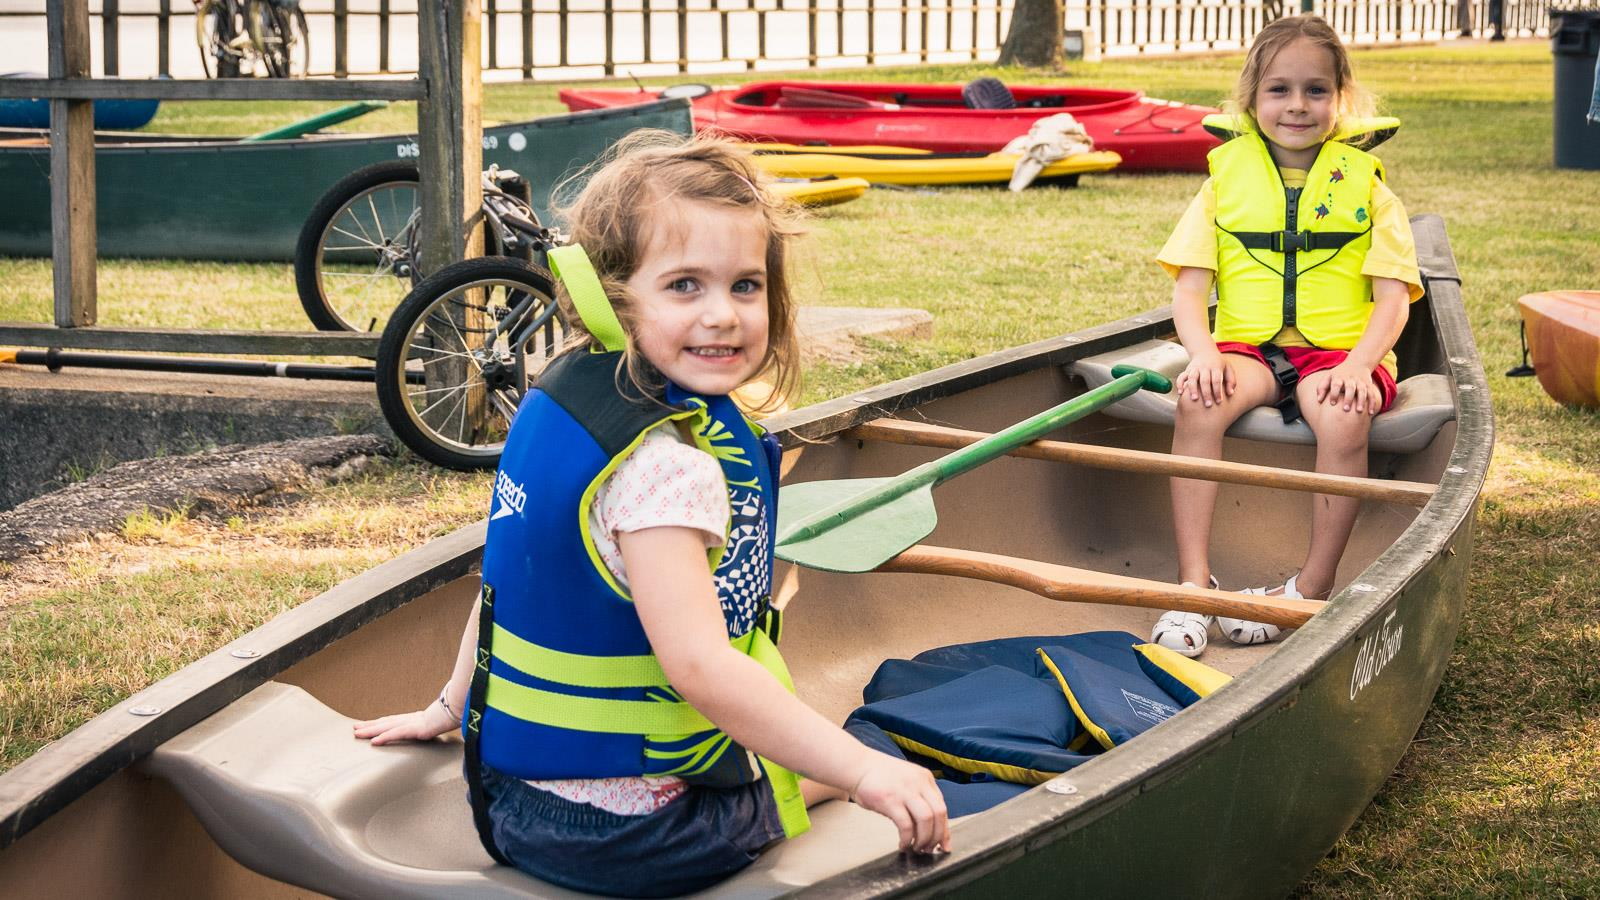 Canoe Enthusiasts, Edenton, NC